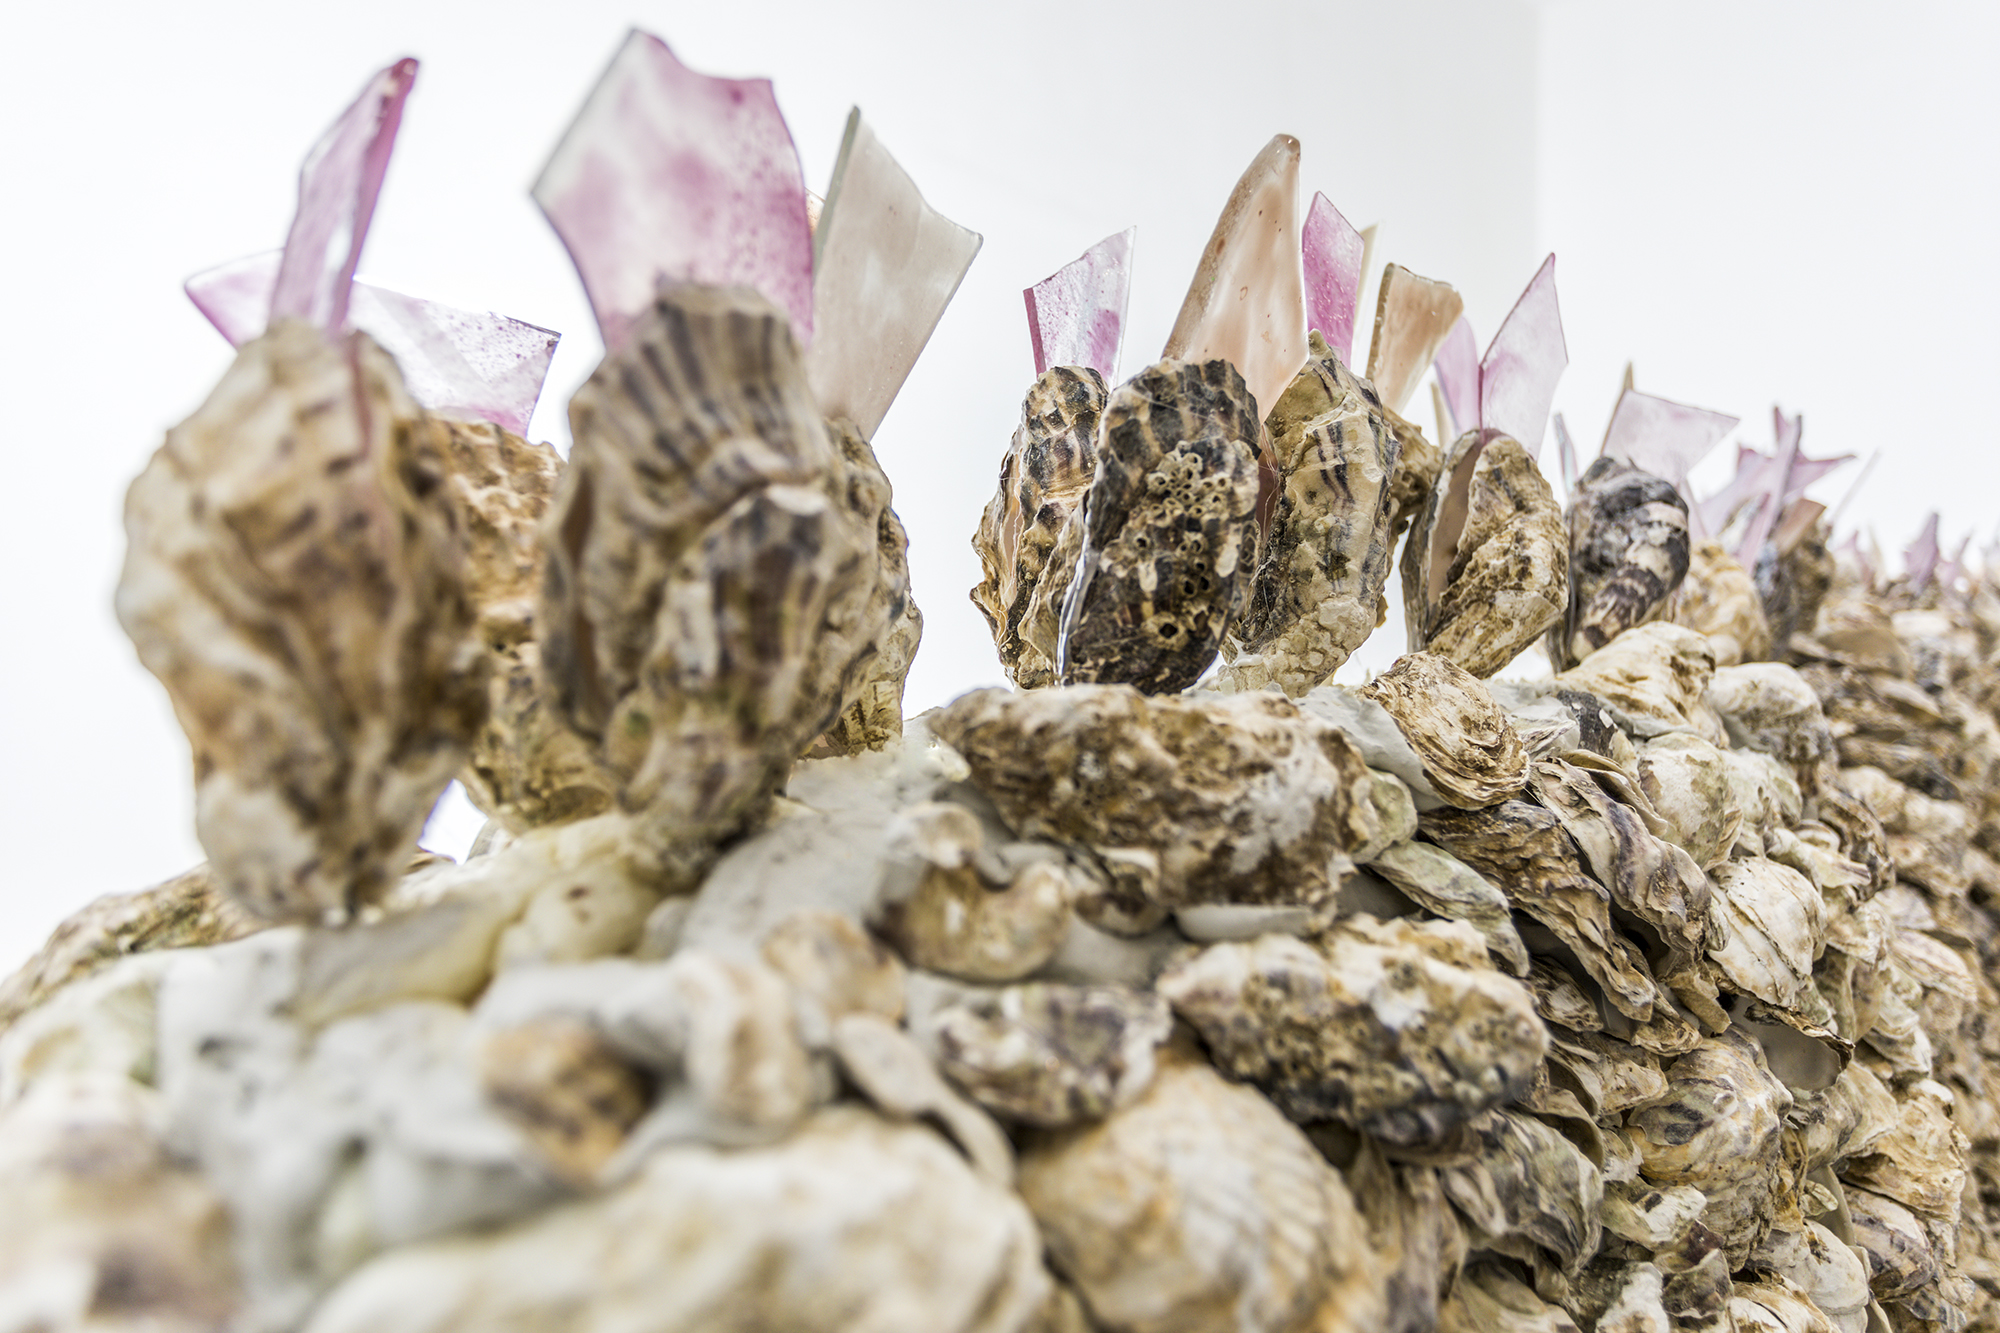 Giuseppina Giordano, THE WALL OF DELICACY (ode to China), 2018 / oyster shells, glass / 250x190x60 cm